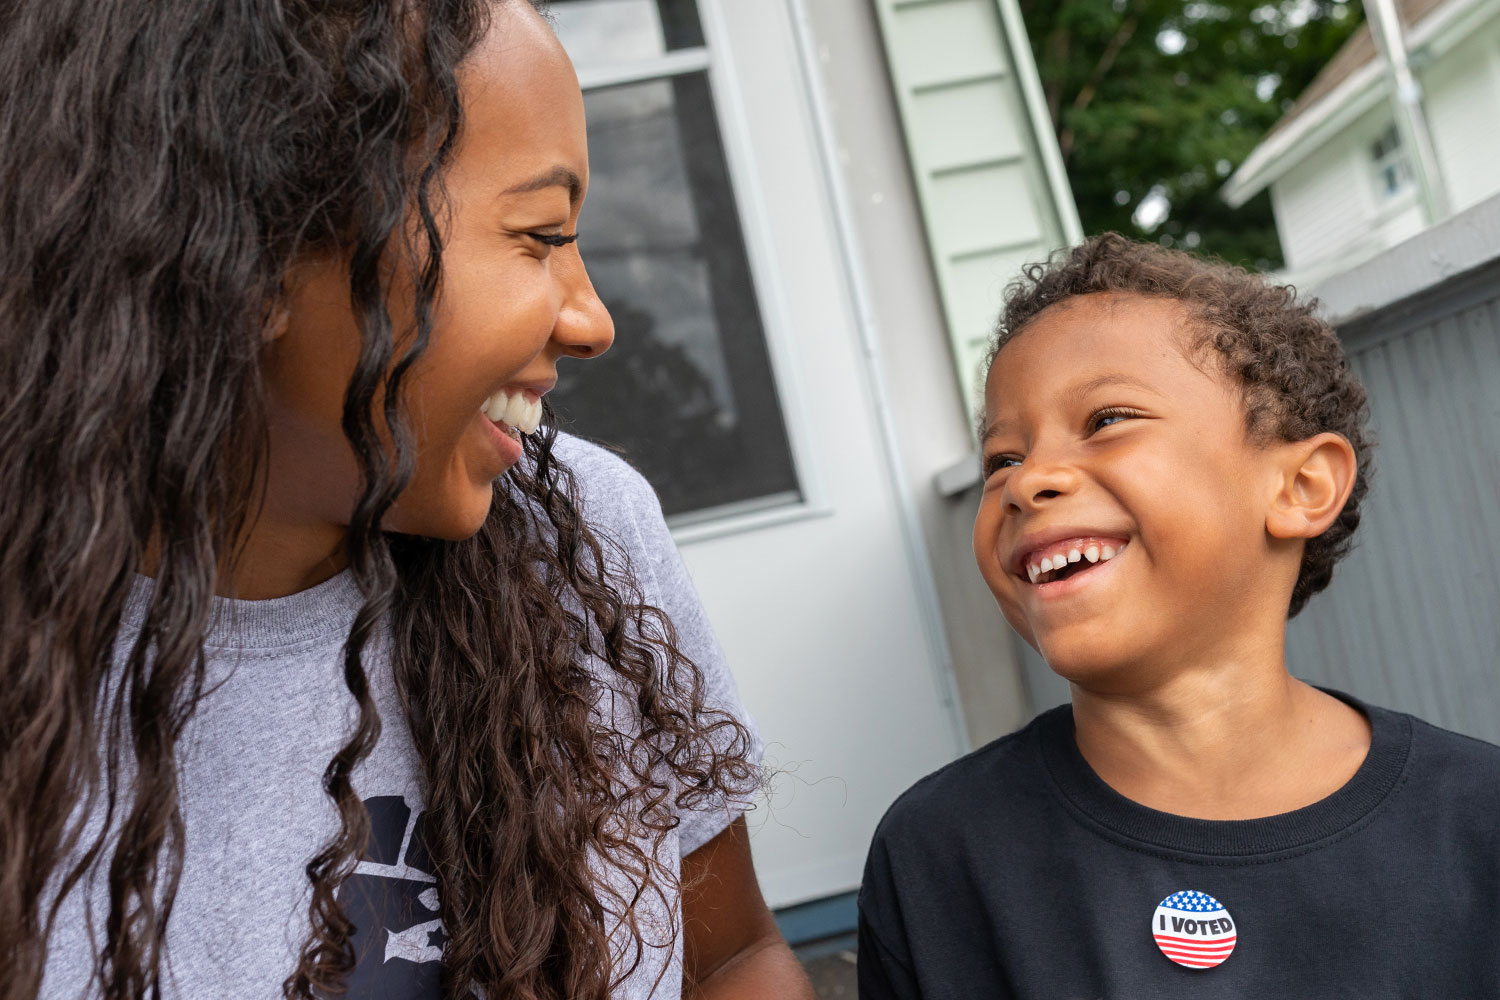 photo shows a mom and her young son looking at each other and smiling. The son is wearing an I Voted sitcker.